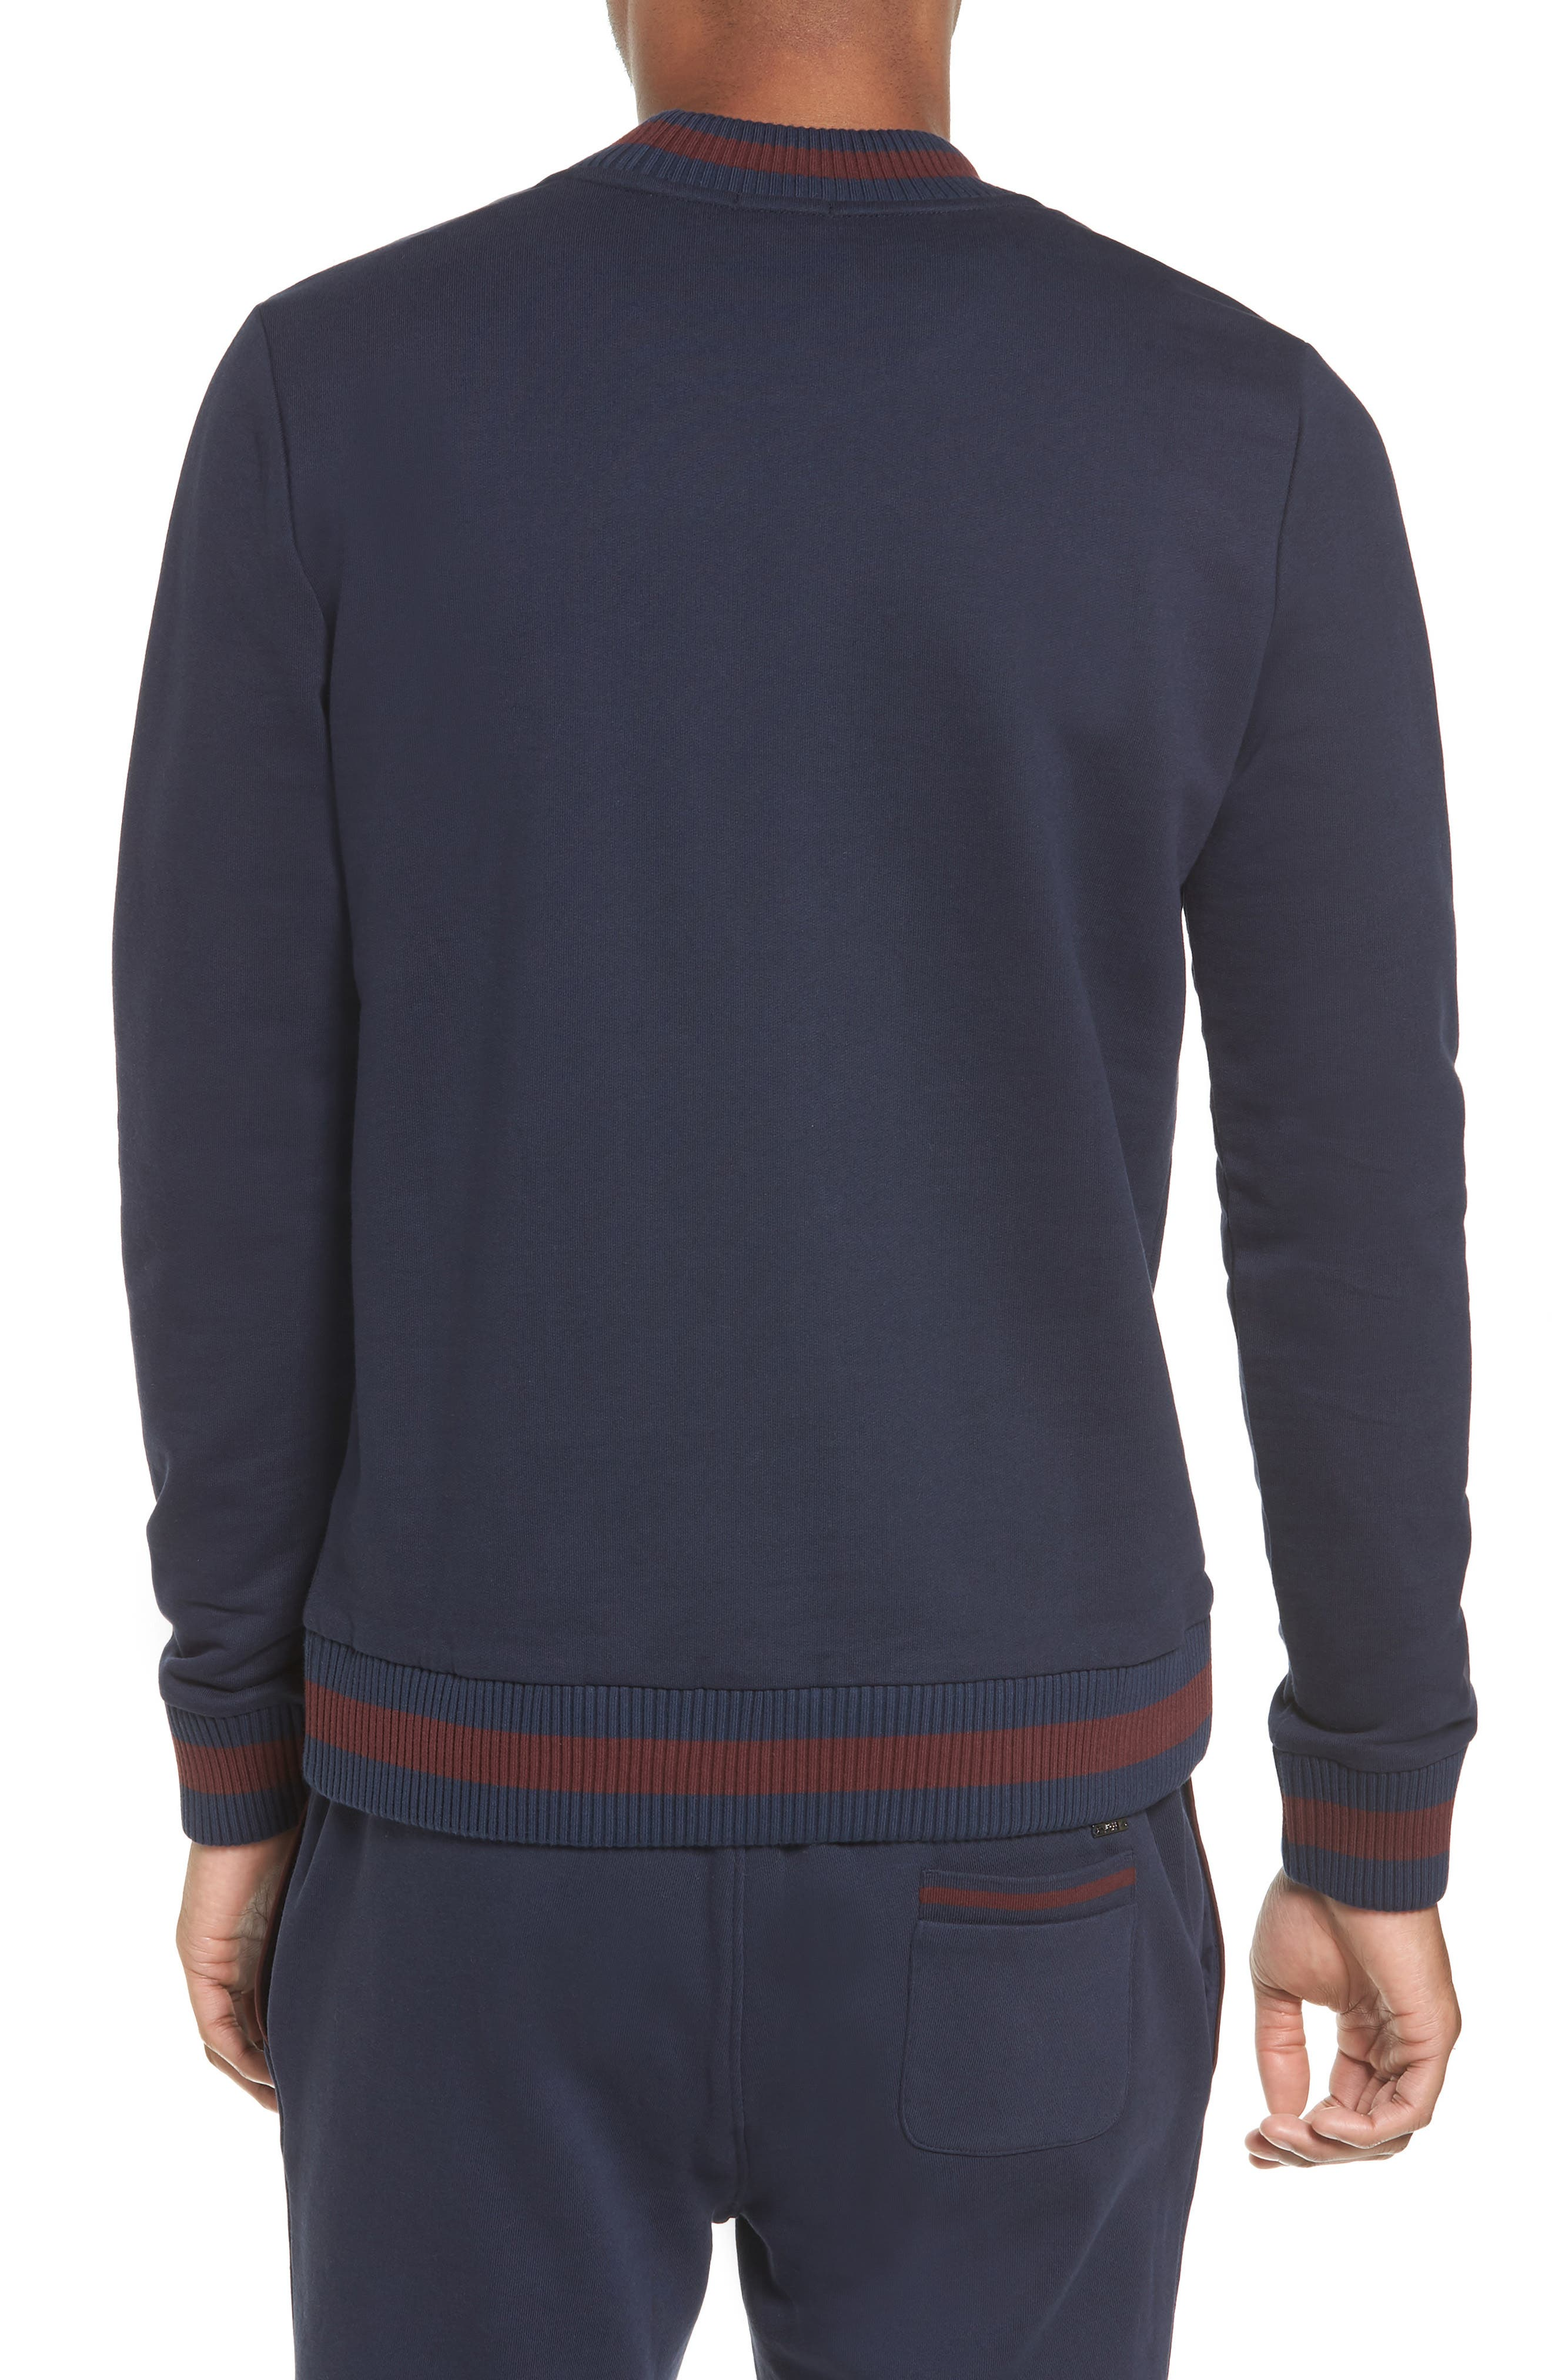 Skubic Slim Crewneck Sweatshirt,                             Alternate thumbnail 2, color,                             Navy